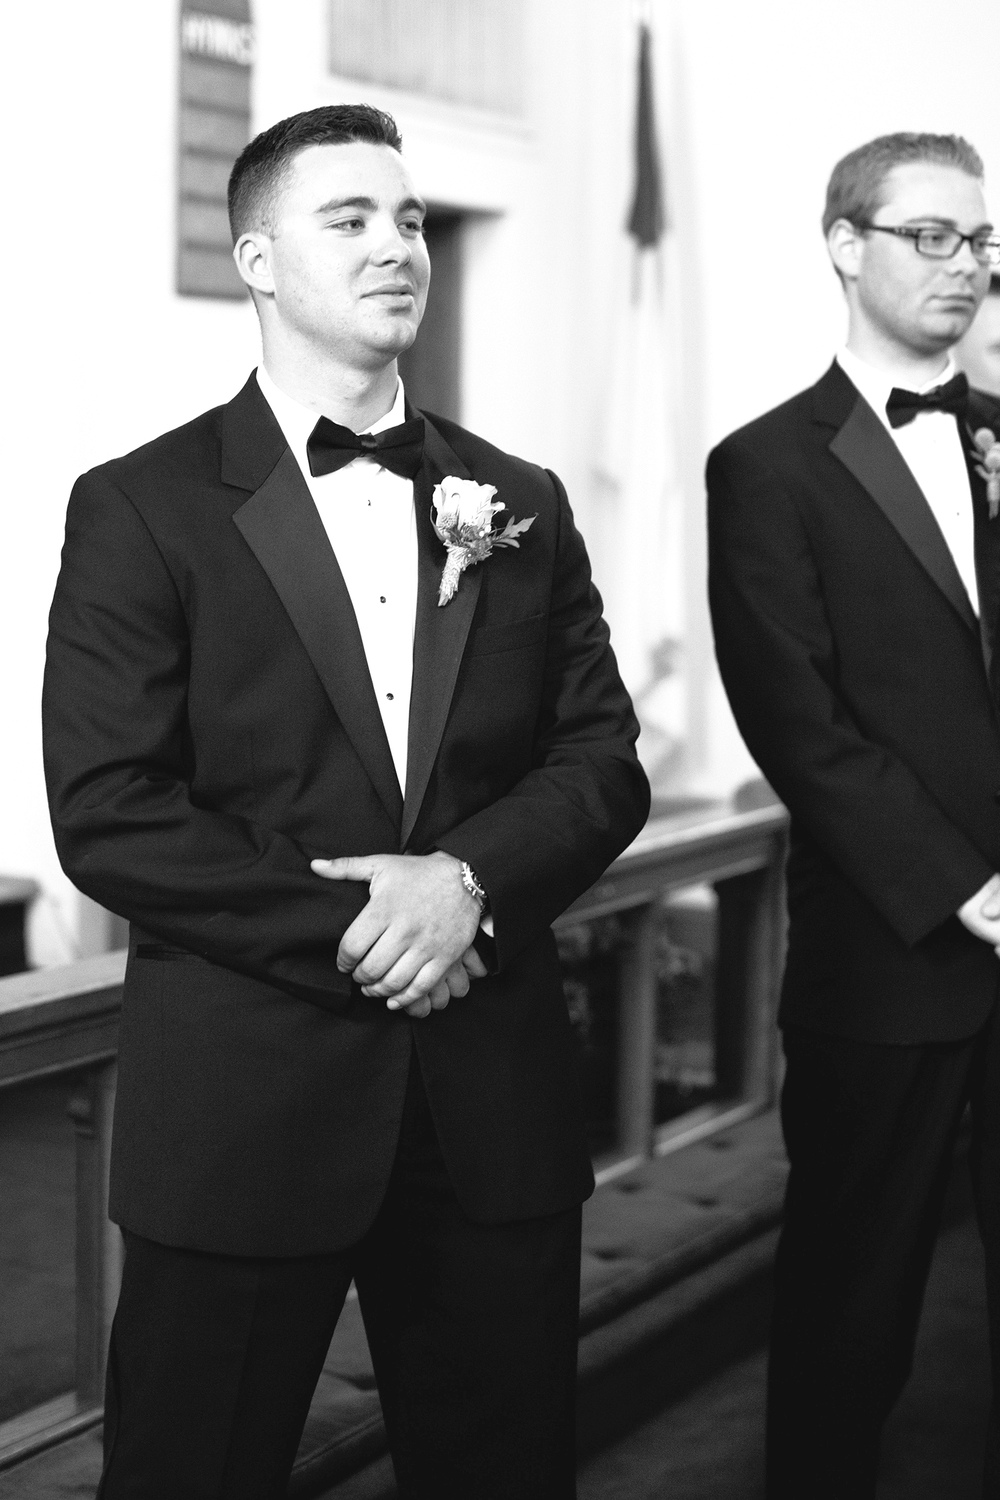 A Groom Seeing his Bride for the first time